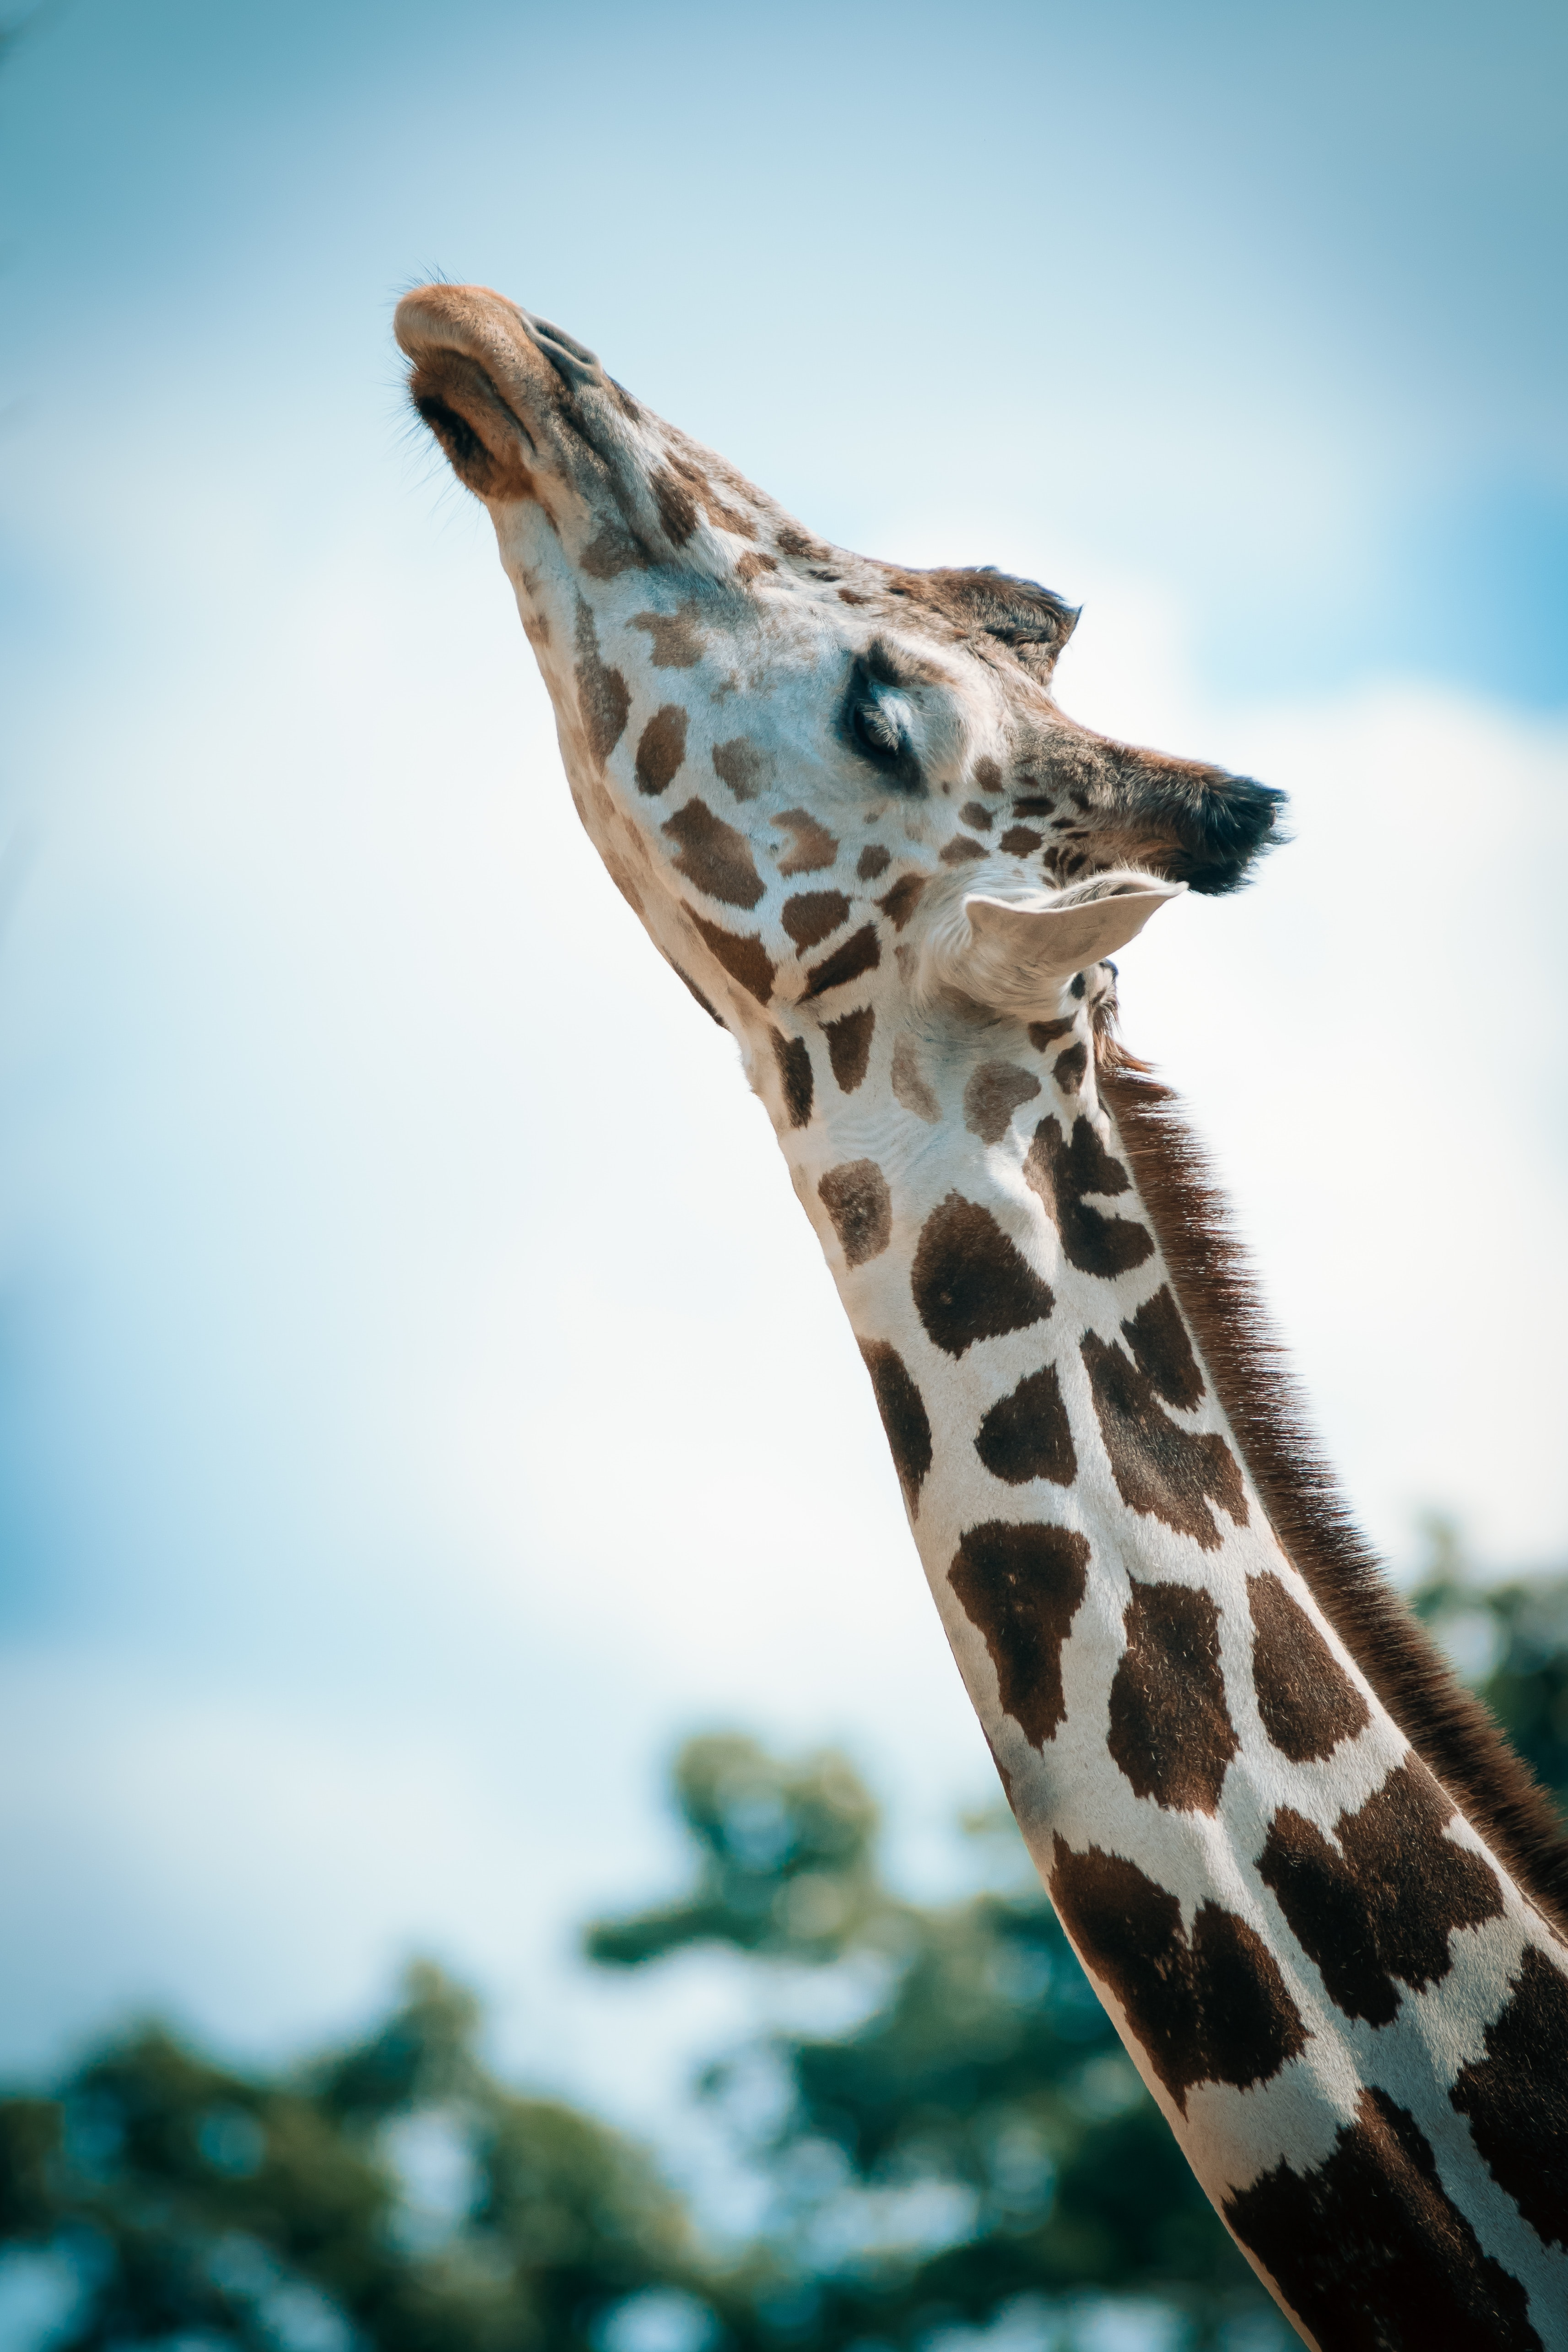 A giraffe looking up so that its neck and head are in a straight line.